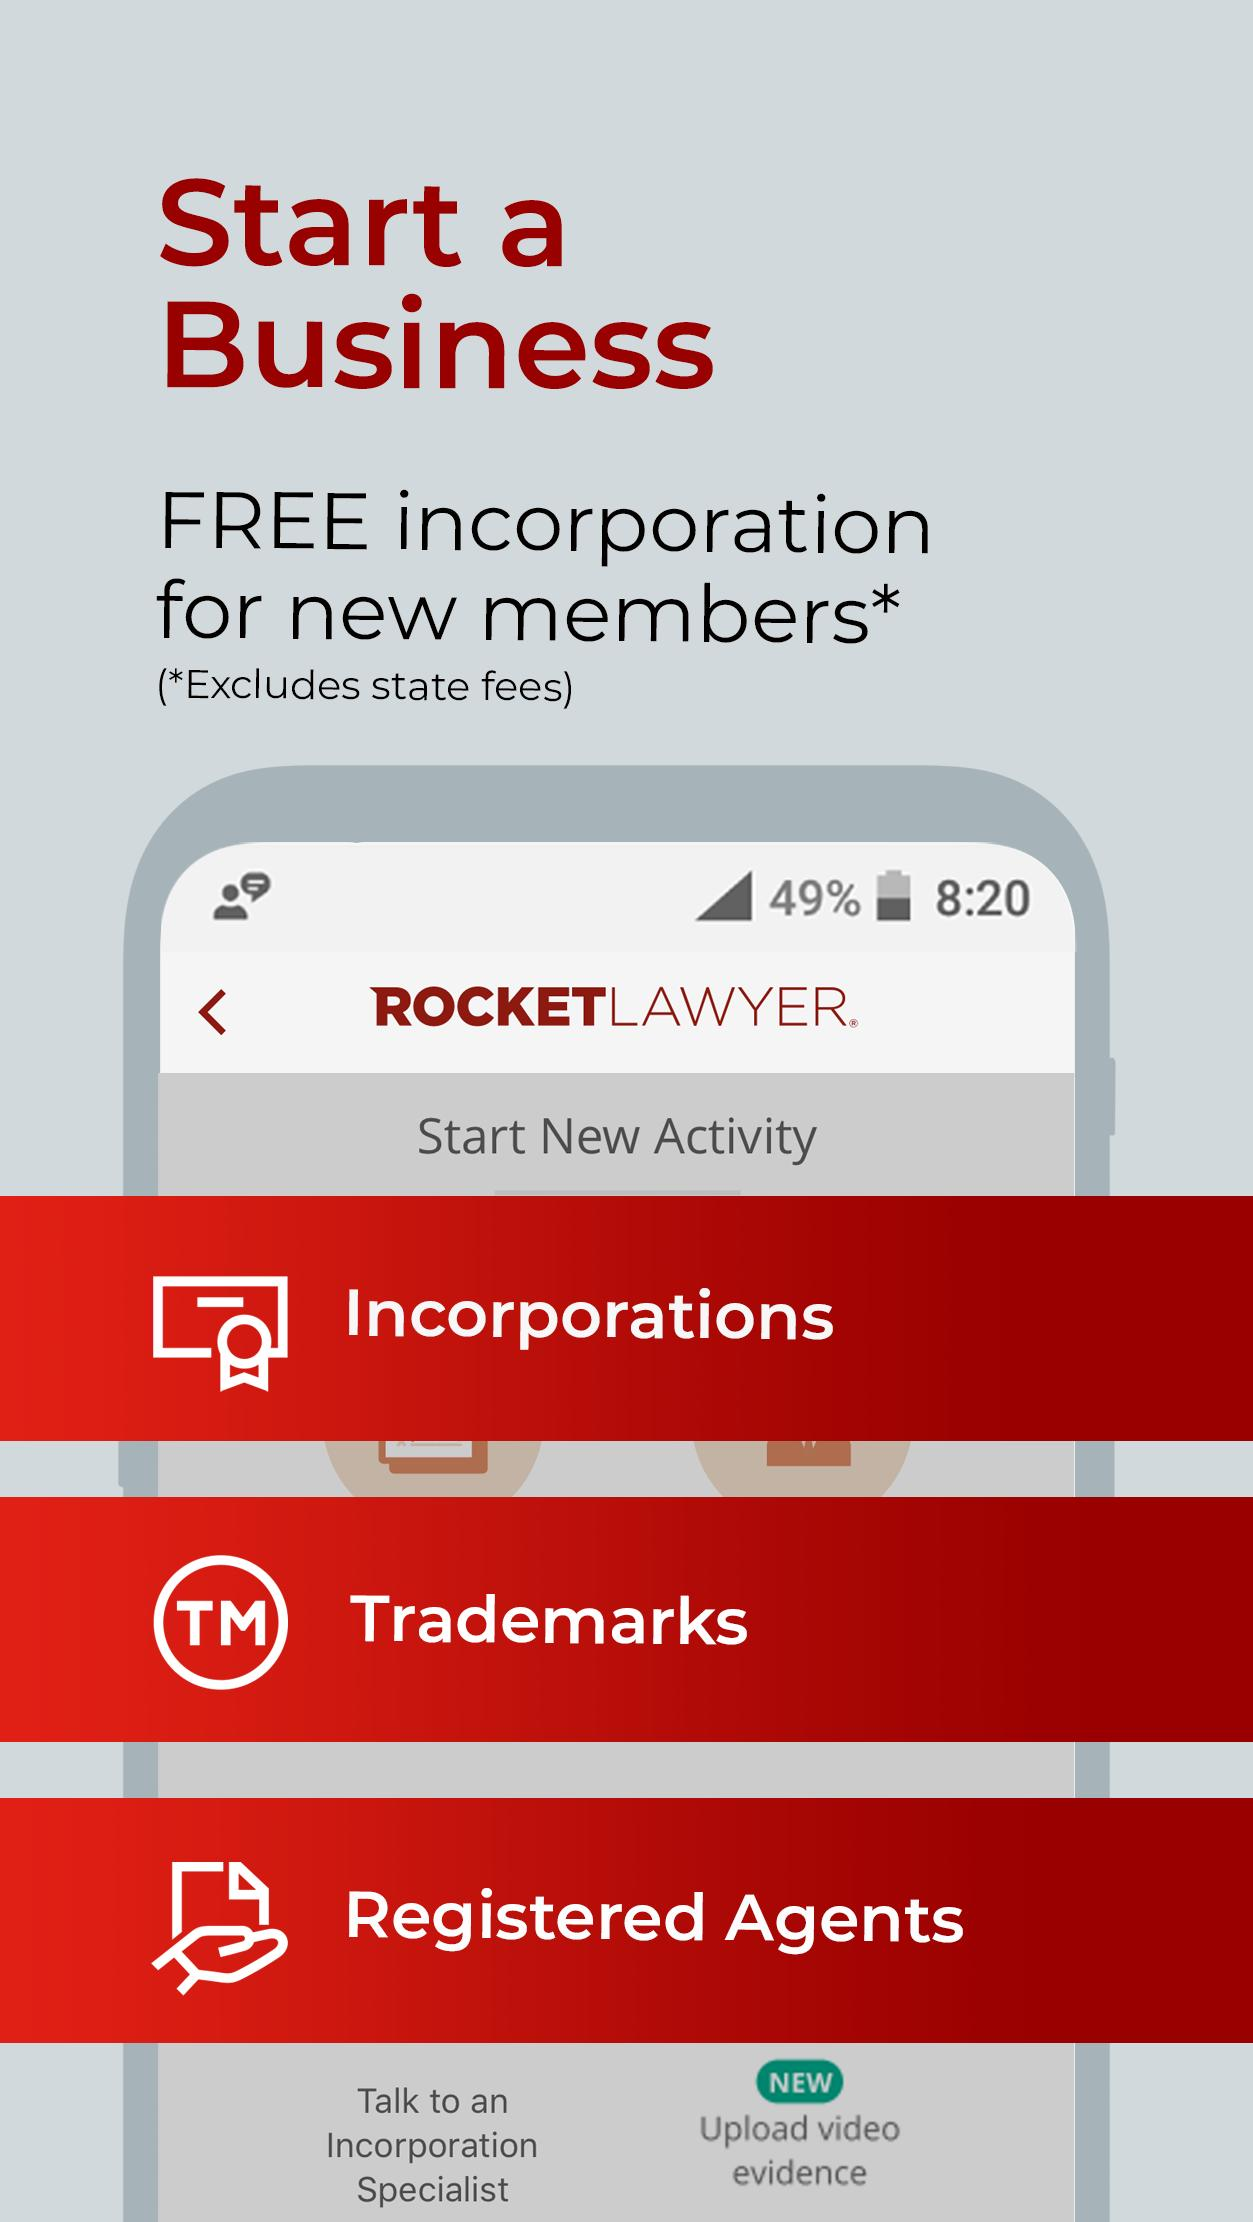 Get Fast Asset Protection with Rocket Lawyer. Try It Free For 14 Days